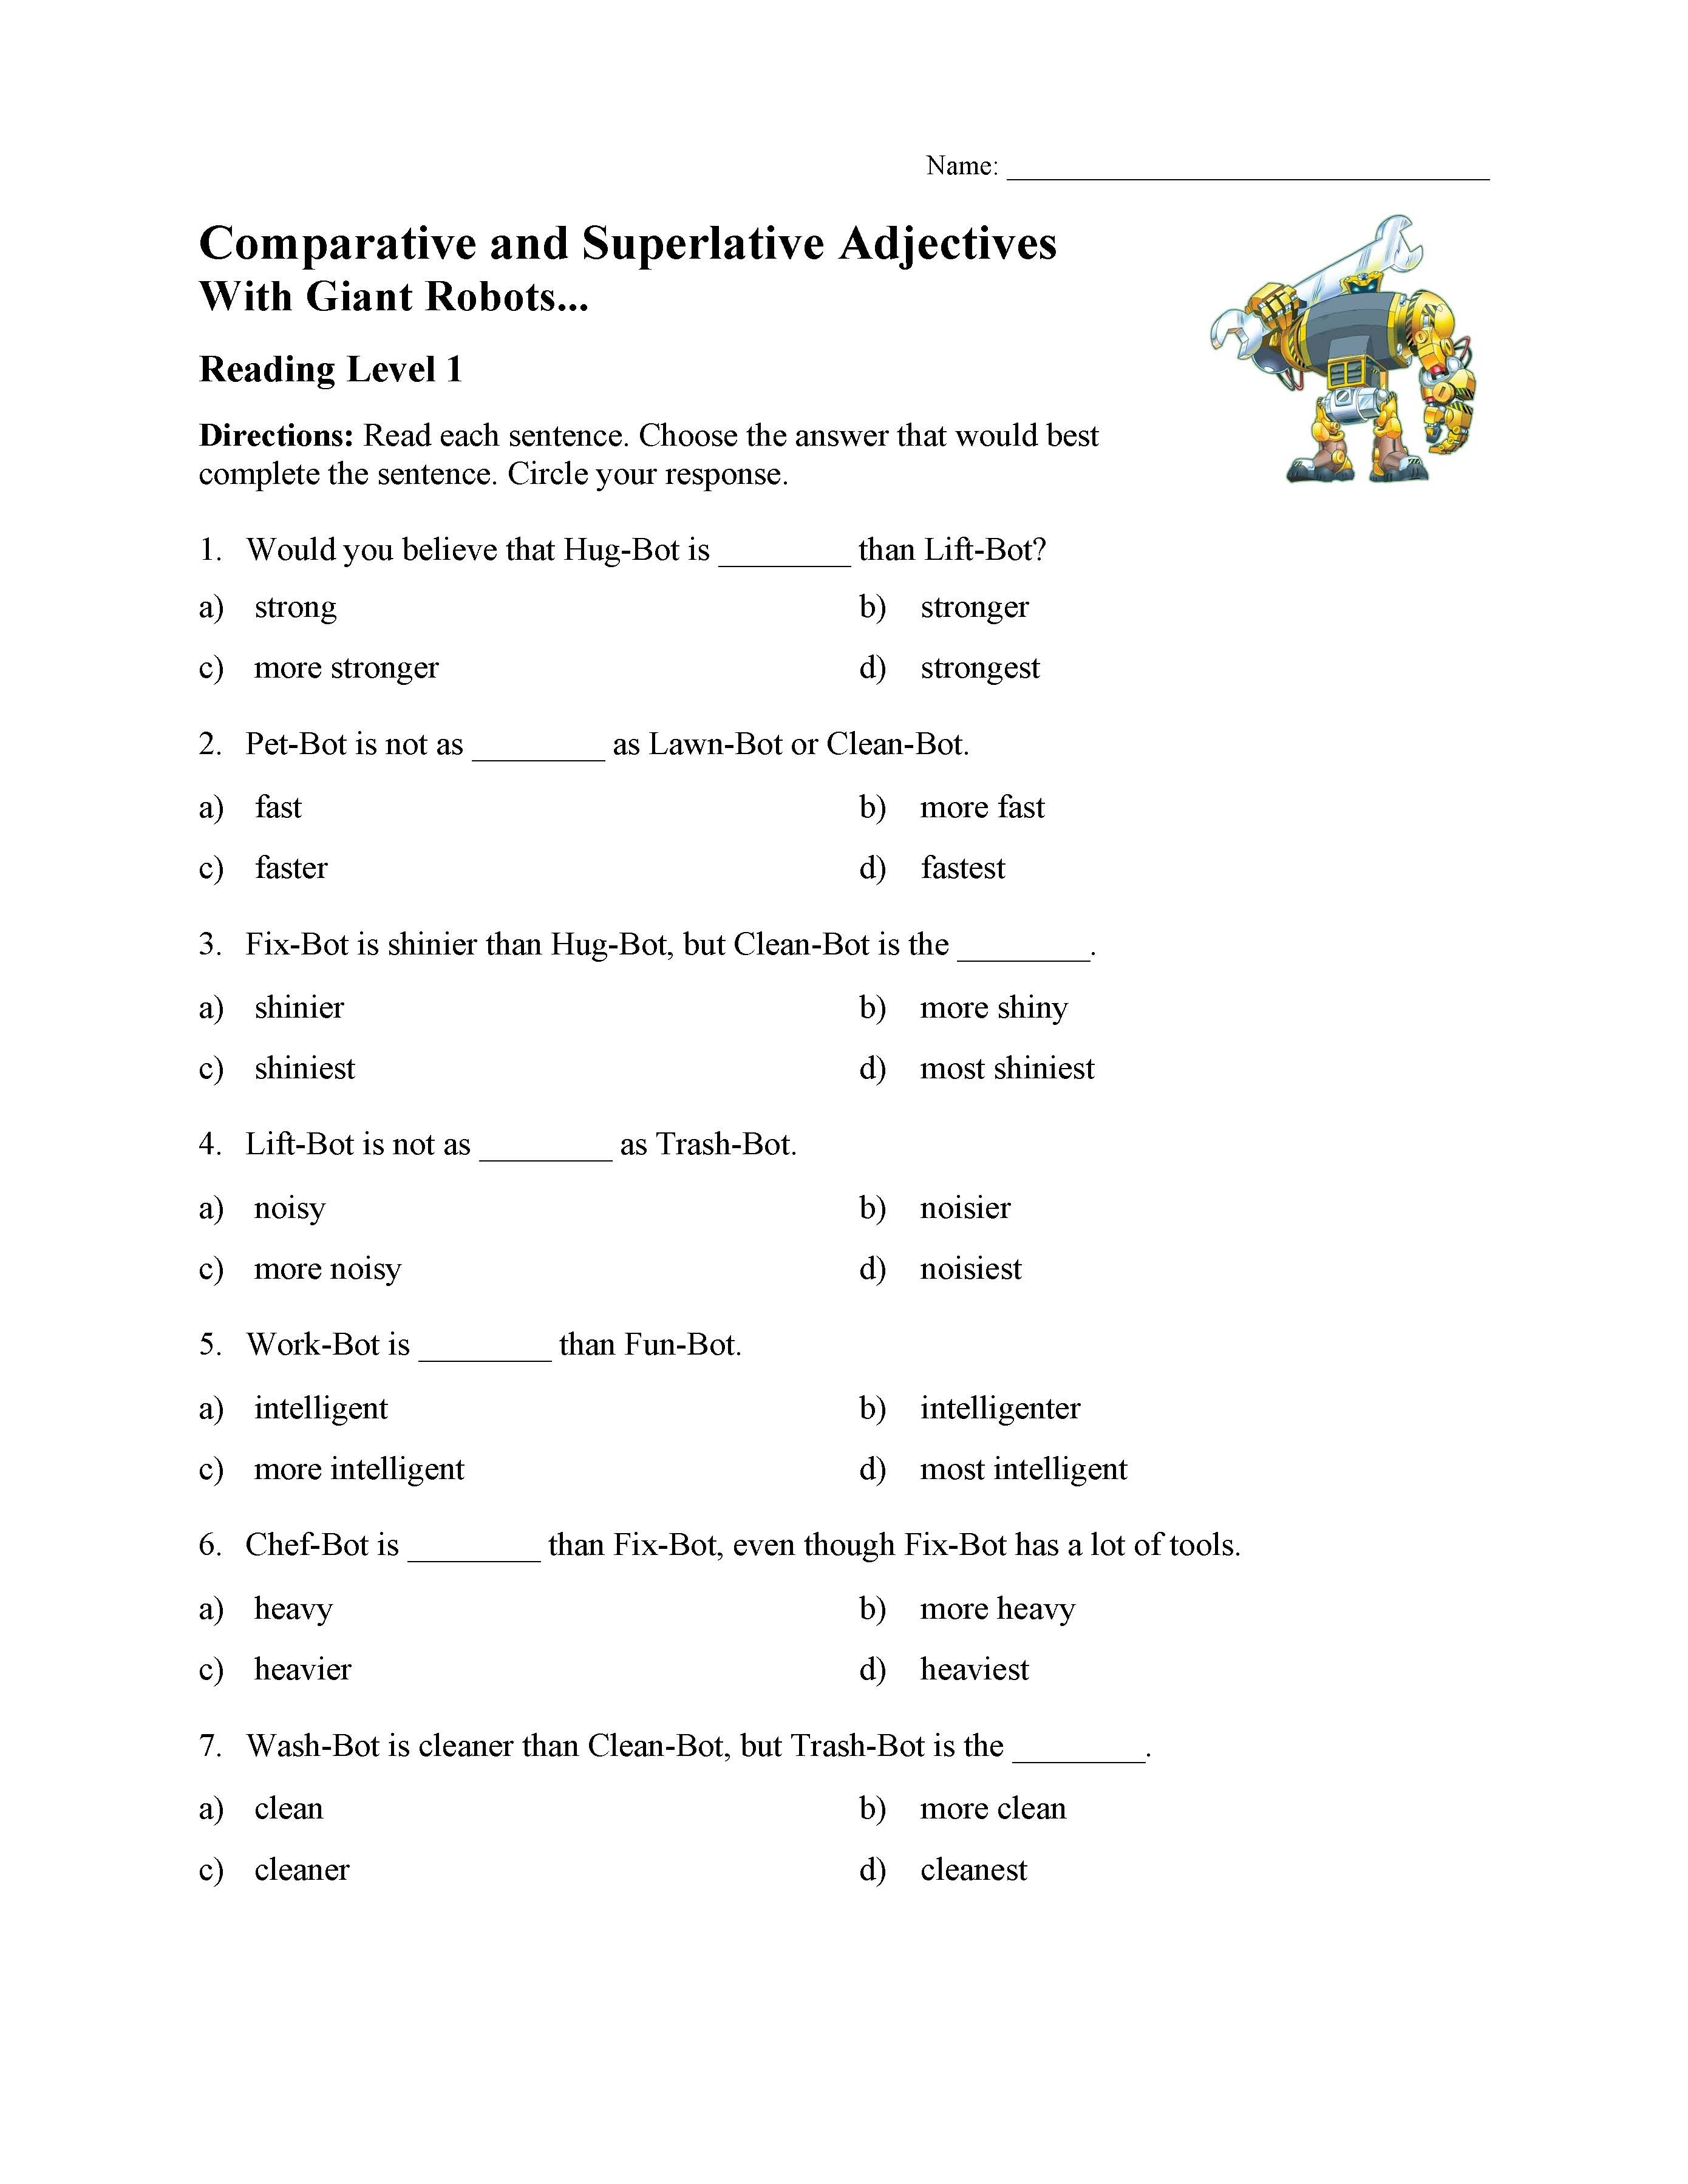 Superlative Adjectives Worksheet likewise Superlative Adjectives Worksheets Grade About This Worksheet further Who Will Score the Most   parative and Superlative Adjective Game additionally parative and Superlative Adjectives Test With Giant Robots also parative and superlative adverbs worksheets as well parative superlative worksheets additionally Free Printable   parative and Superlative Adjectives   eTeachers additionally Adjectives Worksheets    parative and Superlative Adjectives besides  likewise  besides parative adjectives worksheets 2nd grade furthermore parative Or Superlative  parative Or Superlative Reading as well About This Worksheet Superlative Adjectives Worksheets Grade additionally PrimaryLeap co uk    parative and Superlative Adjectives Worksheet likewise English Exercises   parative   Superlative also . on comparative and superlative adjectives worksheet